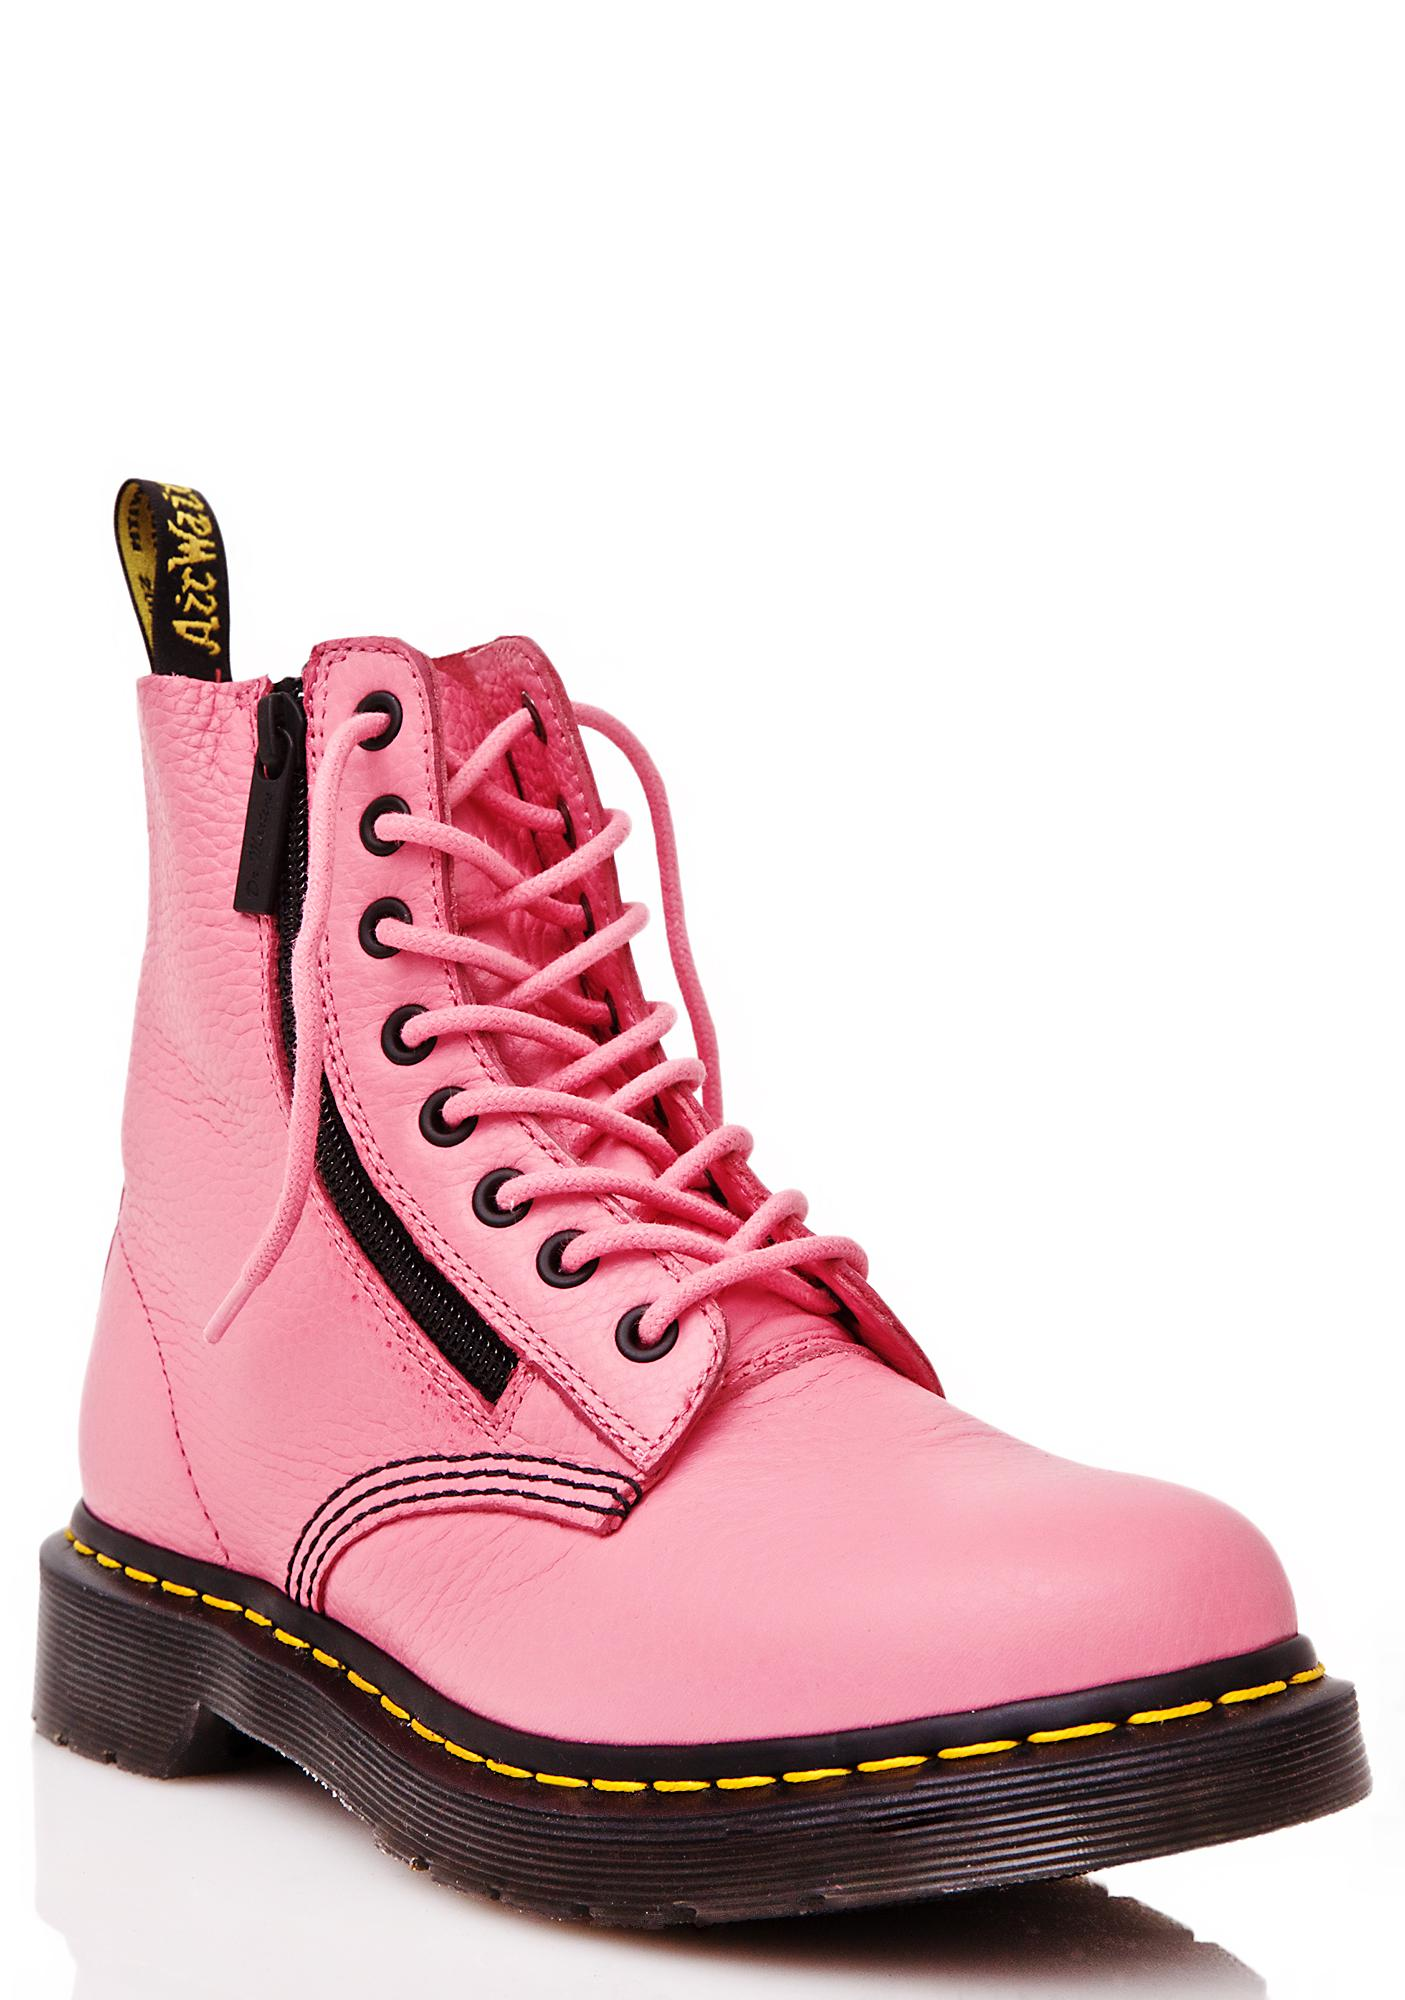 Dr. Martens Pink Zippered Pascal 8 Eye Boots